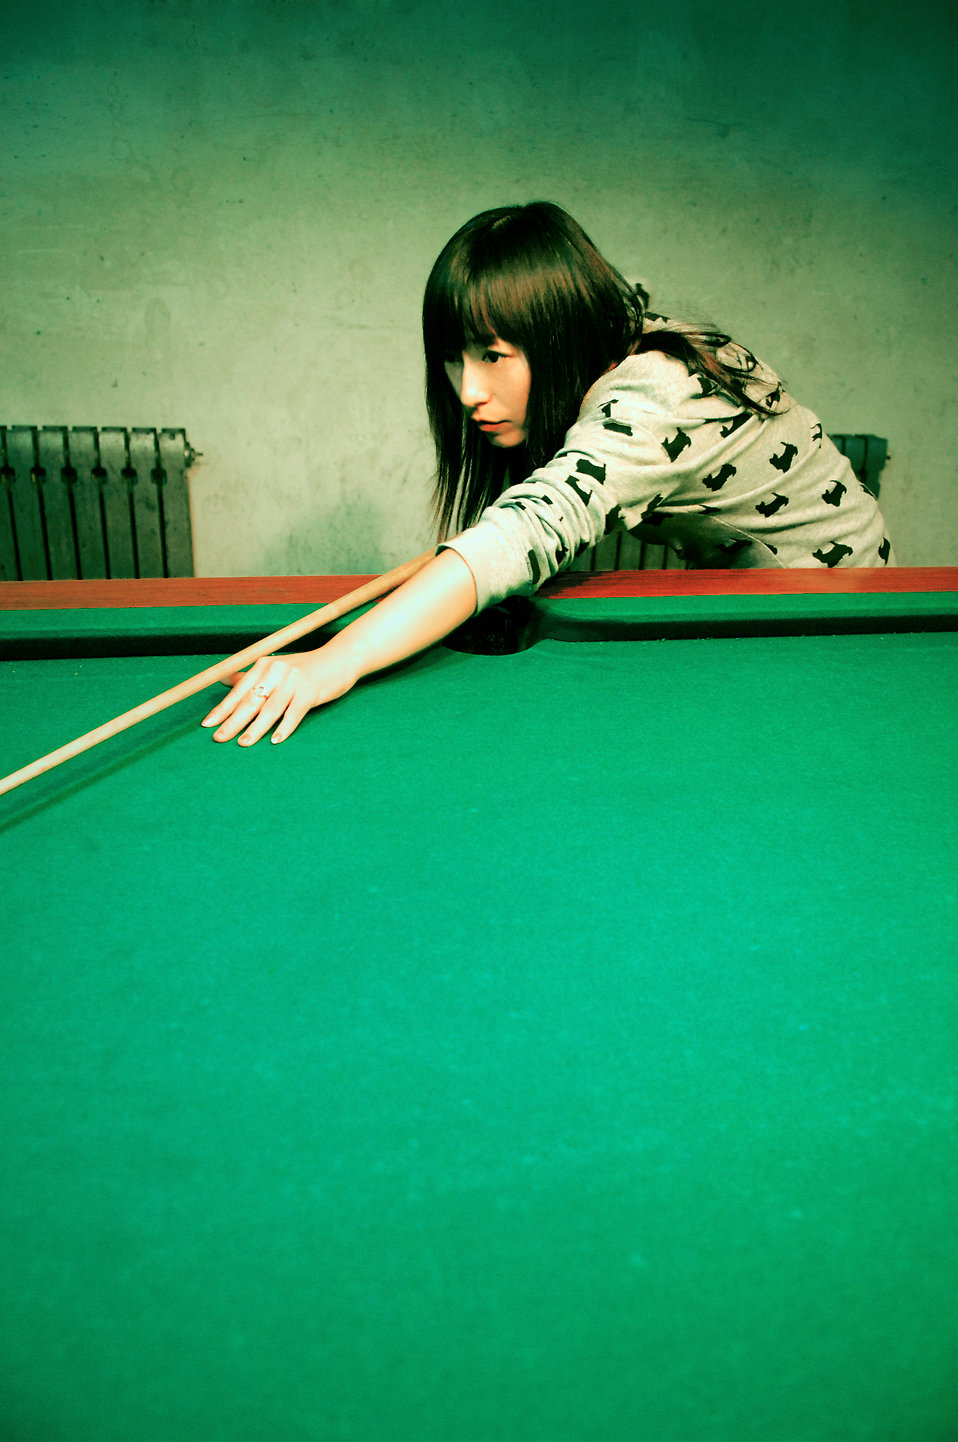 A beautiful Chinese girl playing pool : Free Stock Photo